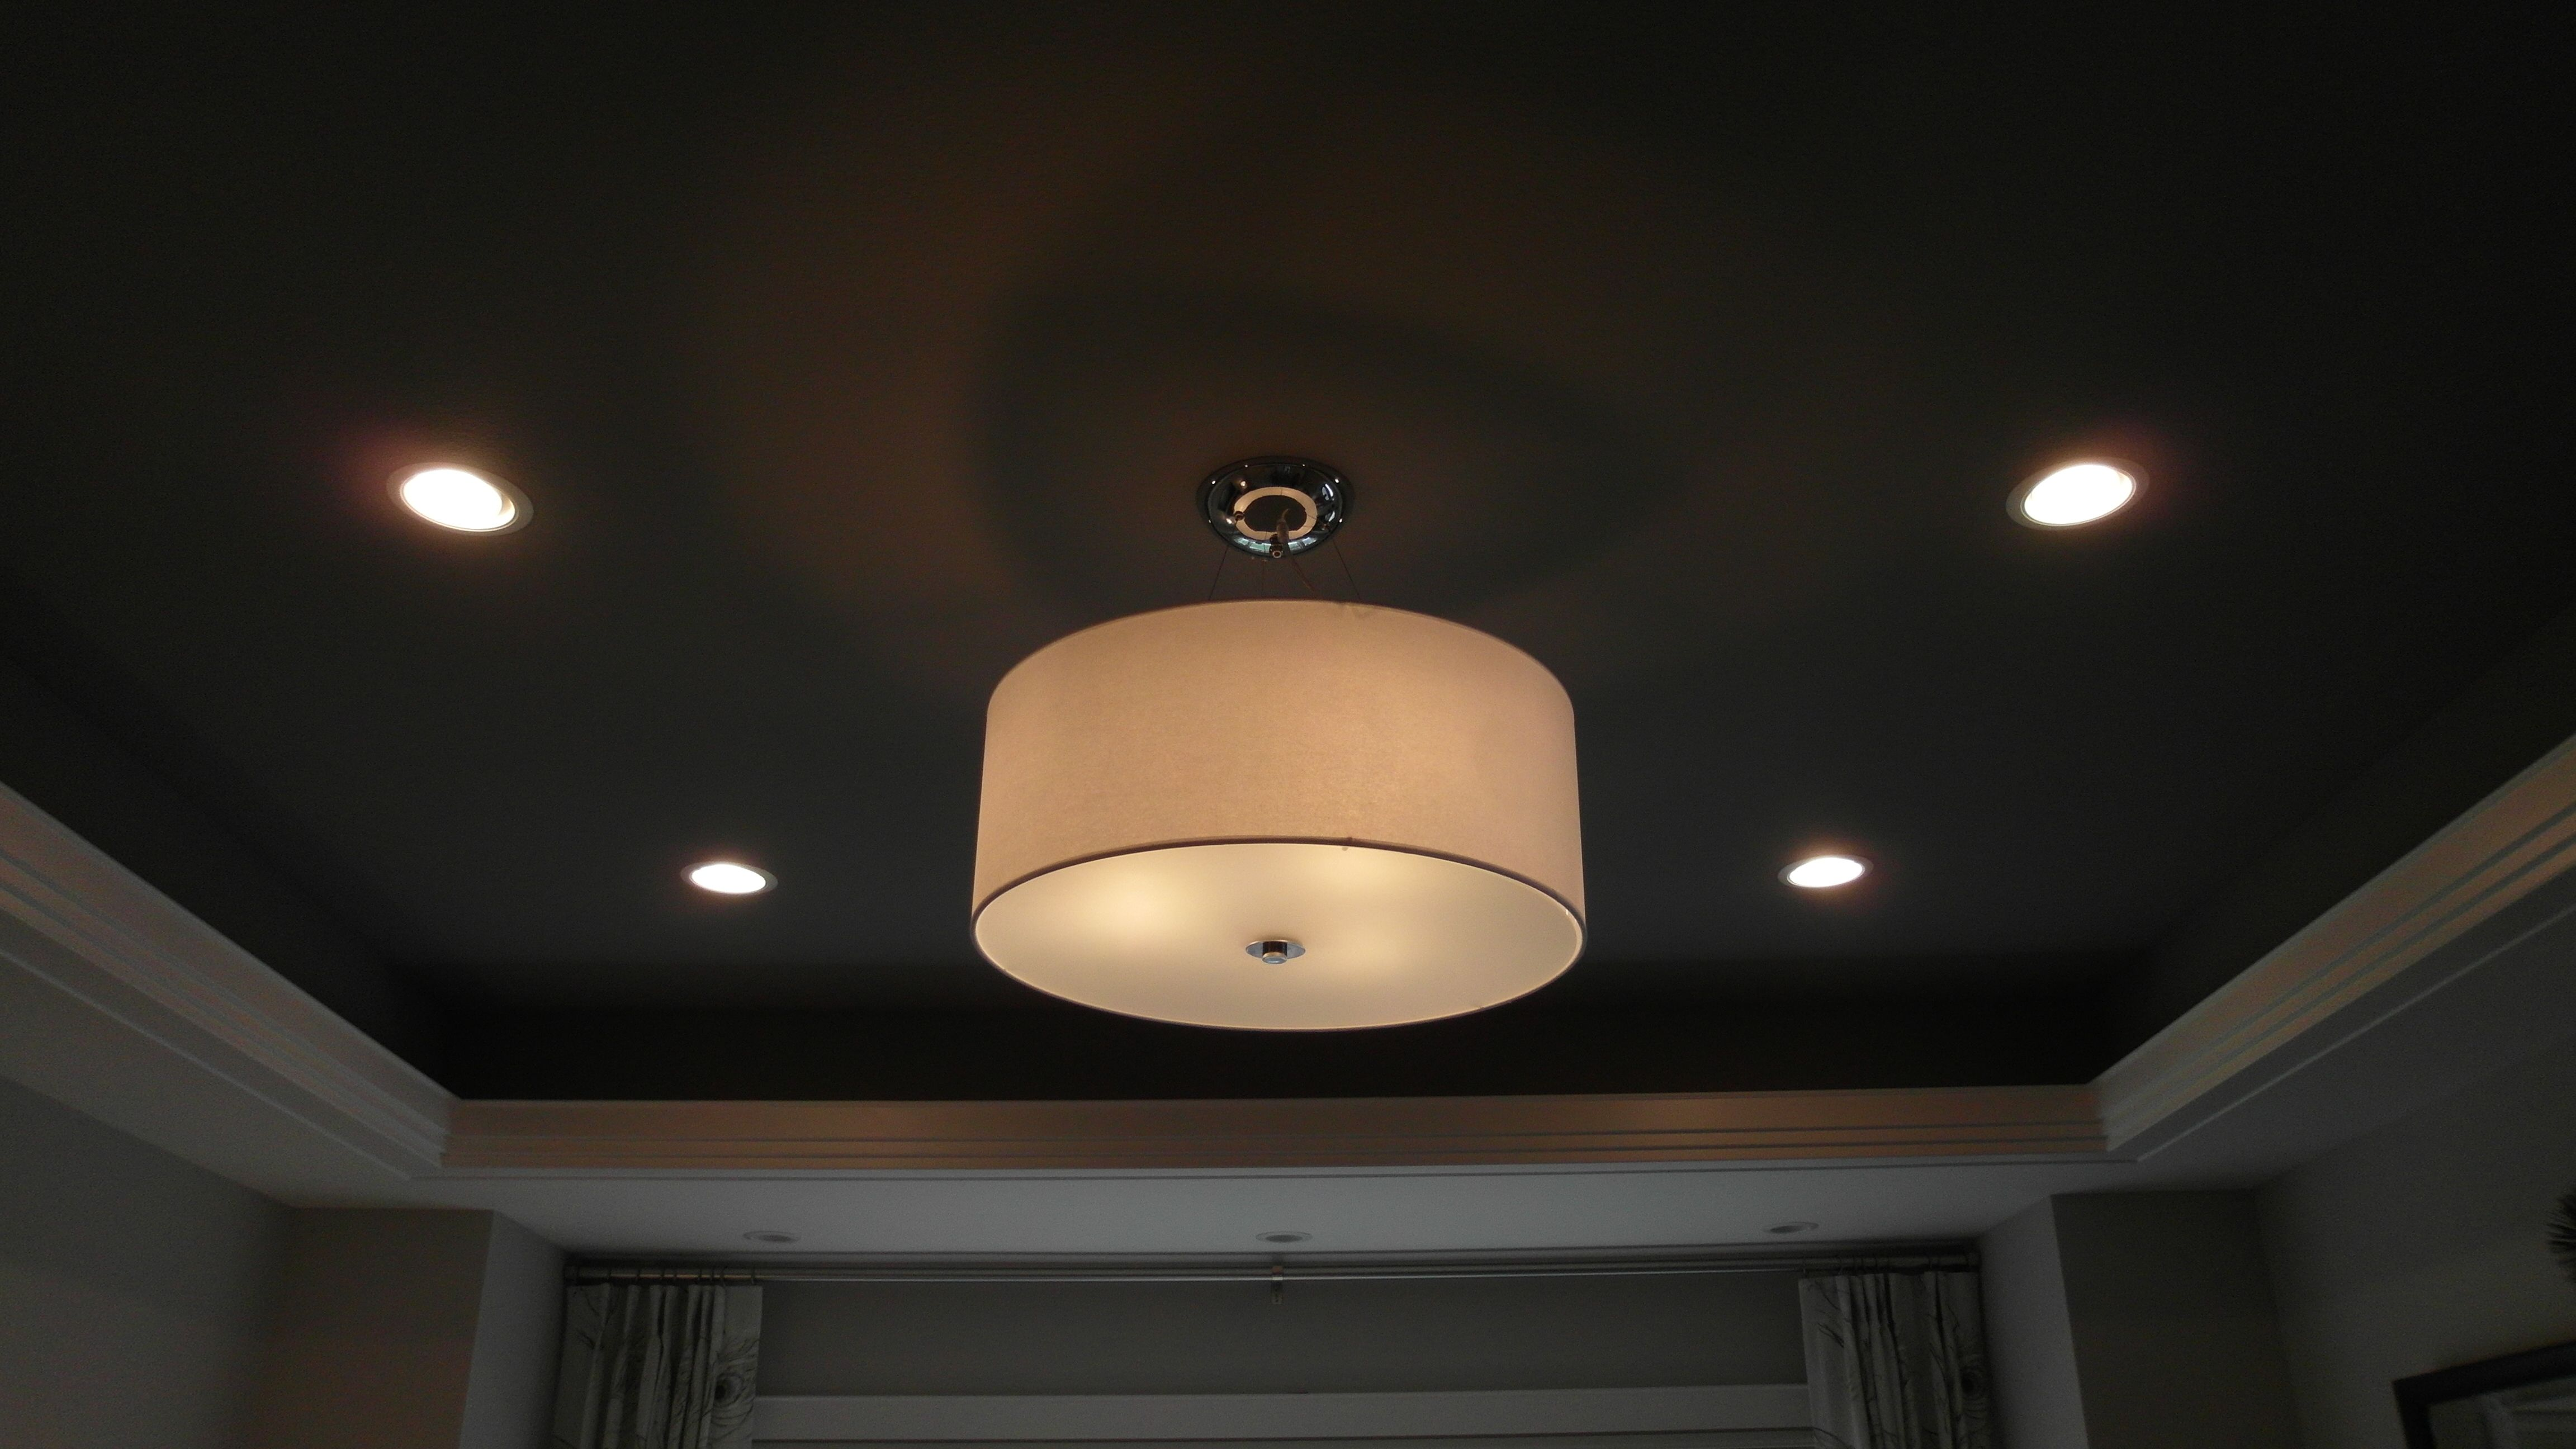 I have to have this light somewhere in the house.  I LOVE it!